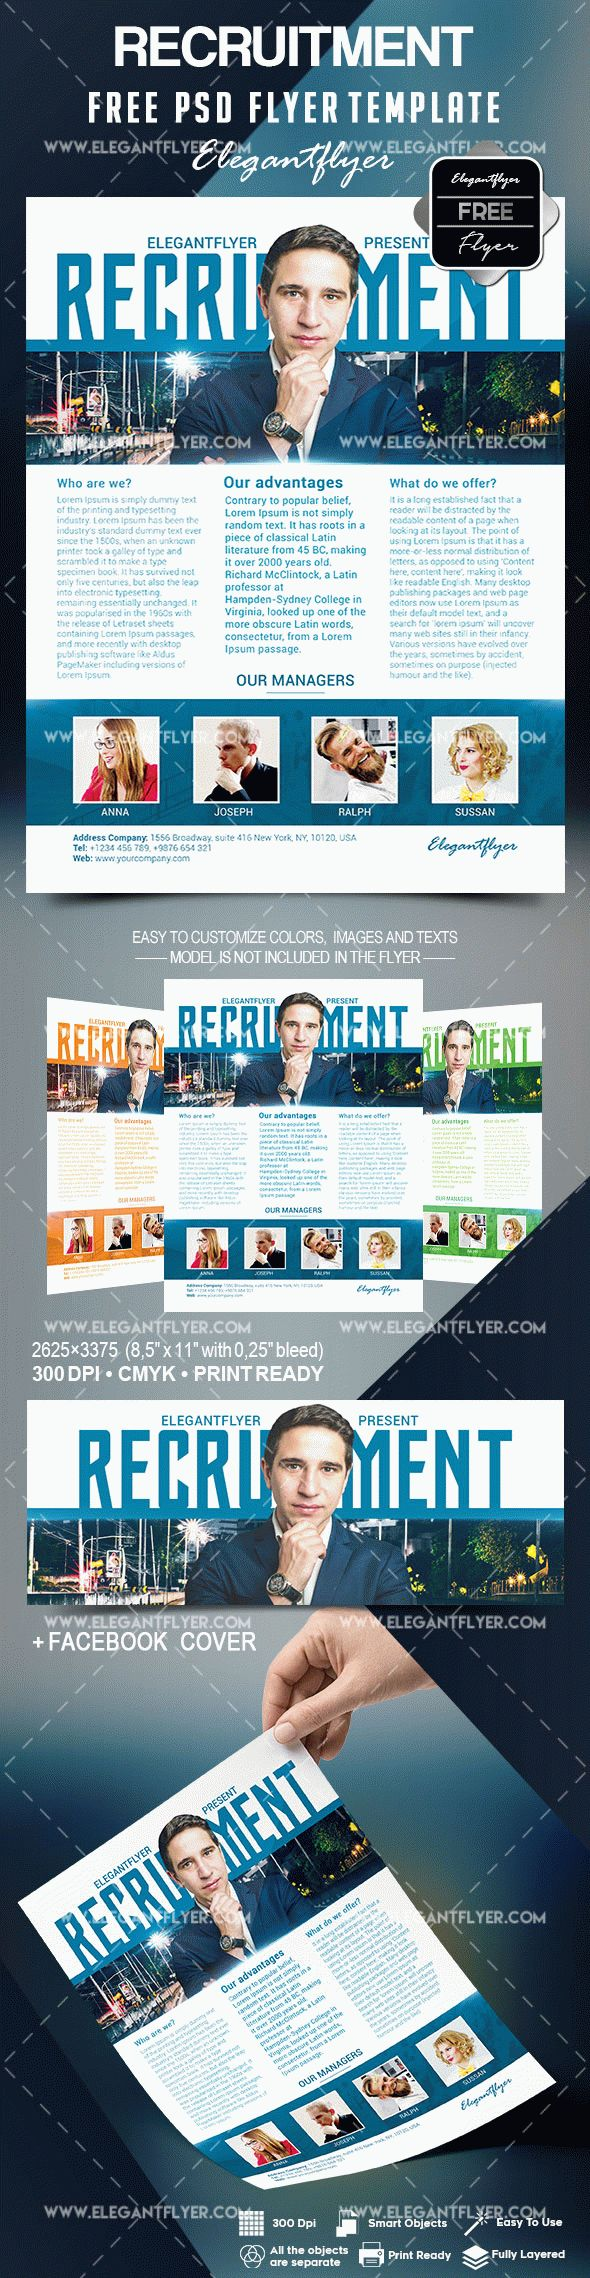 Recruitment Flyer Template Free